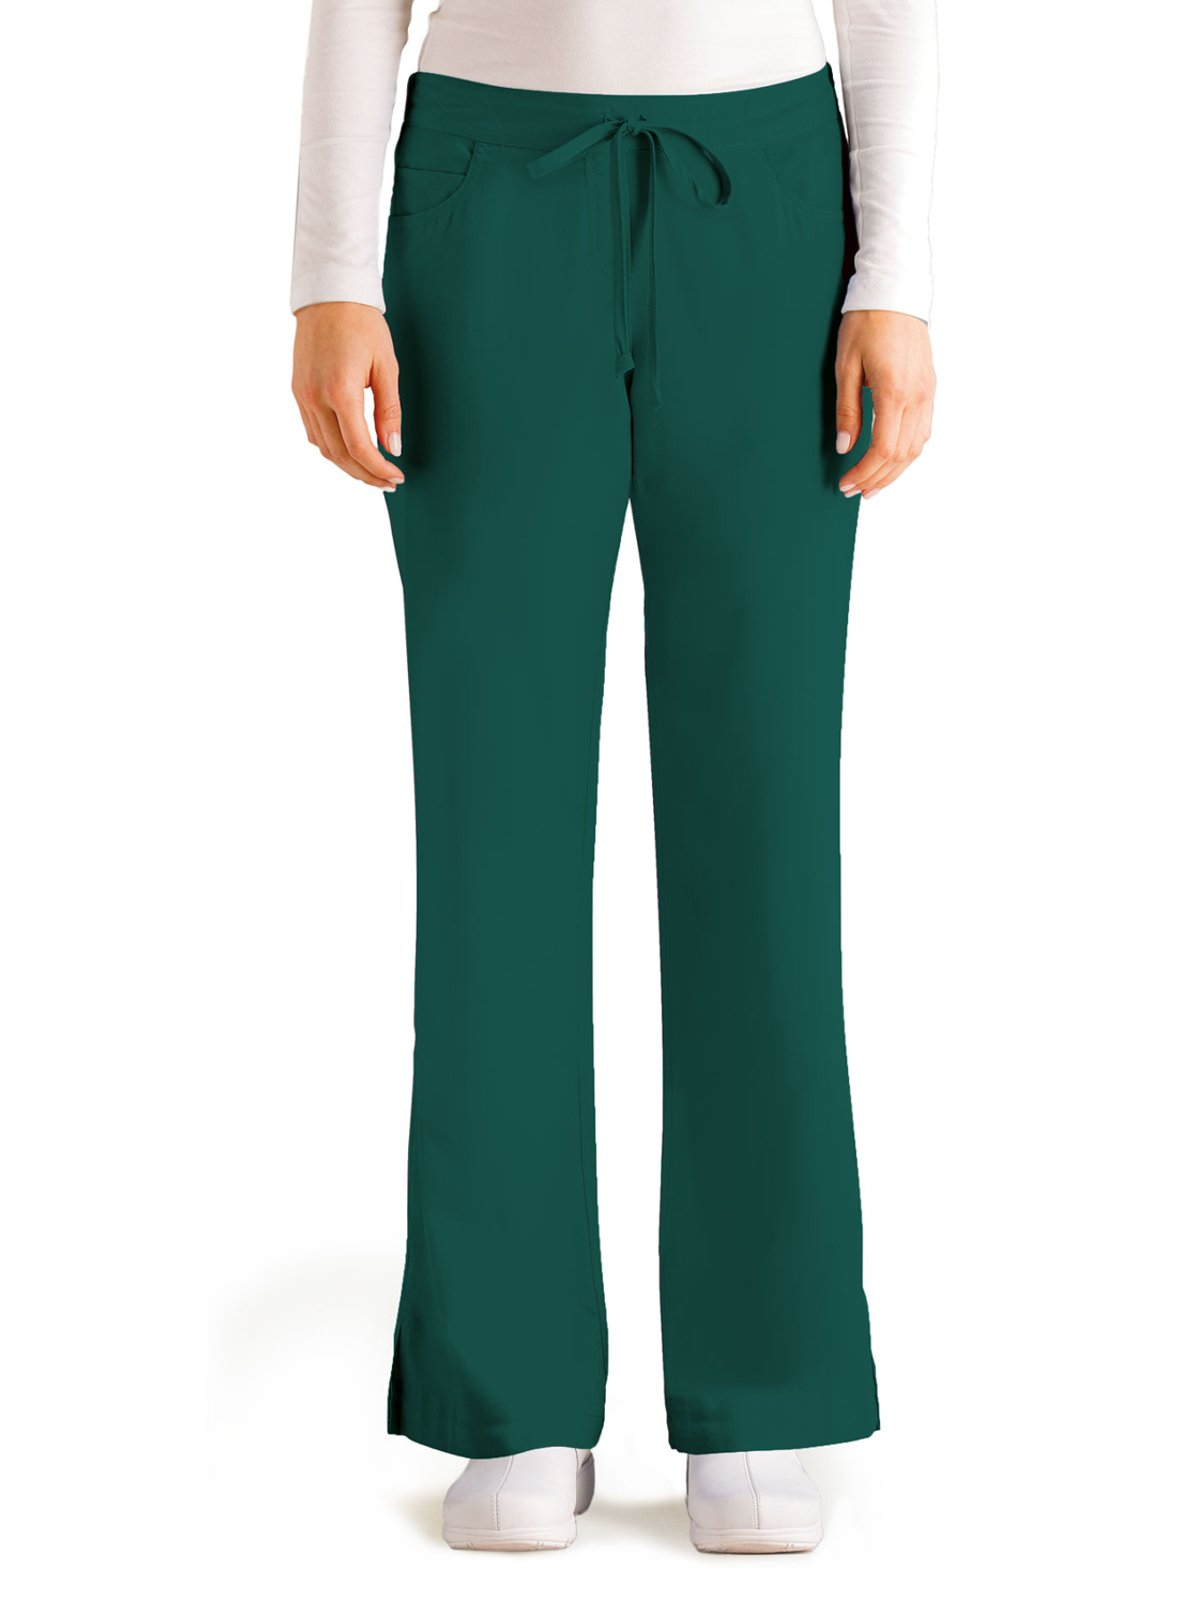 Grey's Anatomy Women's Junior-Fit Five-Pocket Drawstring Scrub Pant - Small Petite - Hunter Green